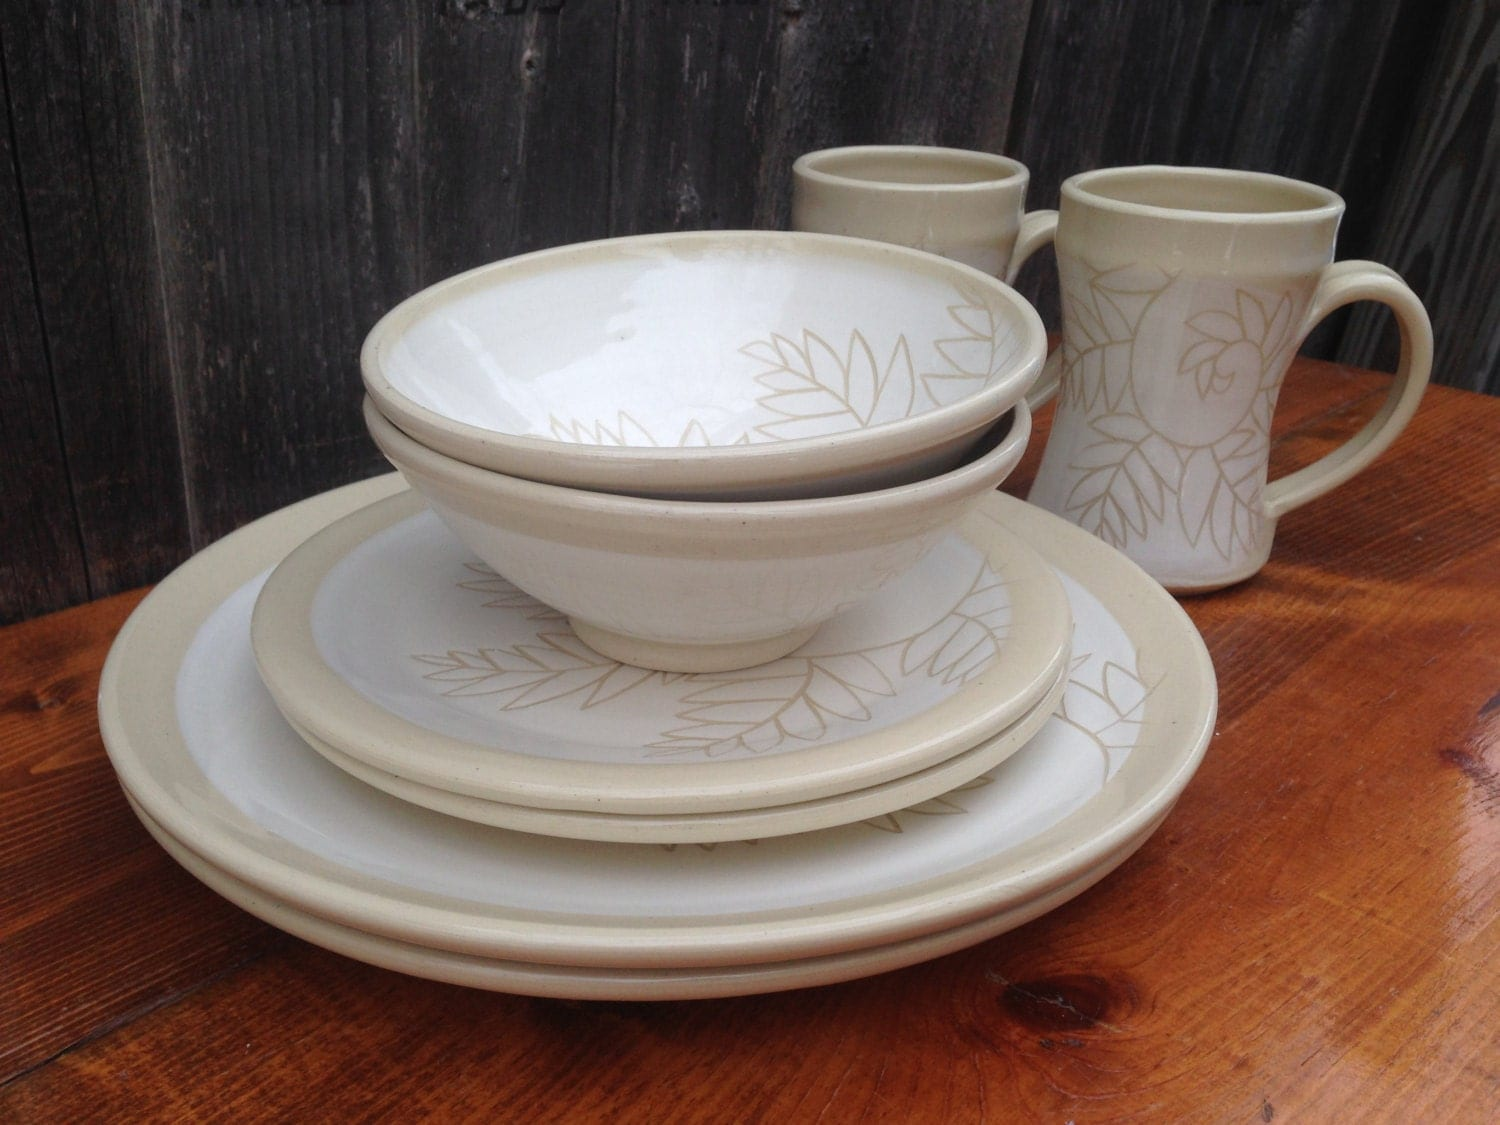 White Fern Pottery Dinnerware Sets For 2 People / 8 Piece